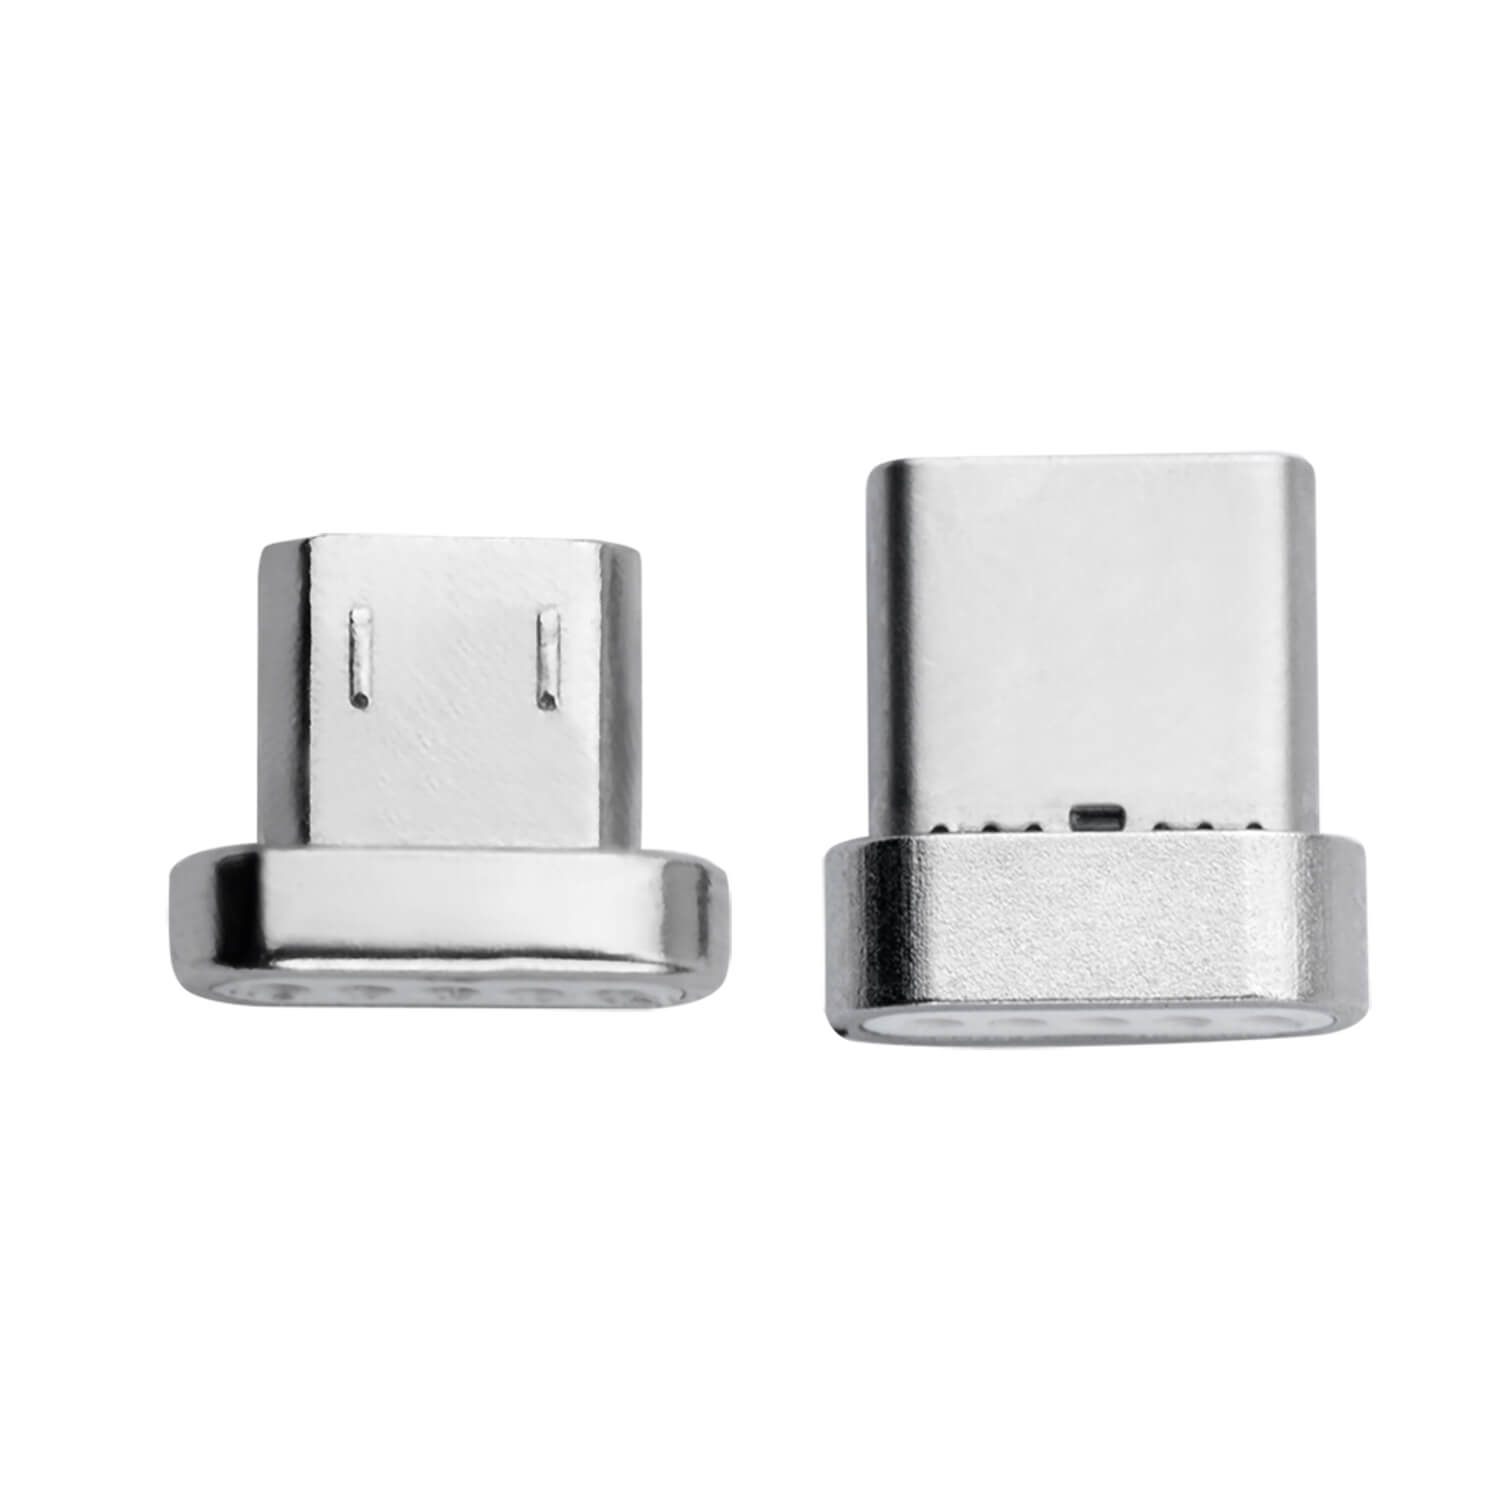 4smarts Magnetic USB-C & MicroUSB Connector GravityCord pack of two